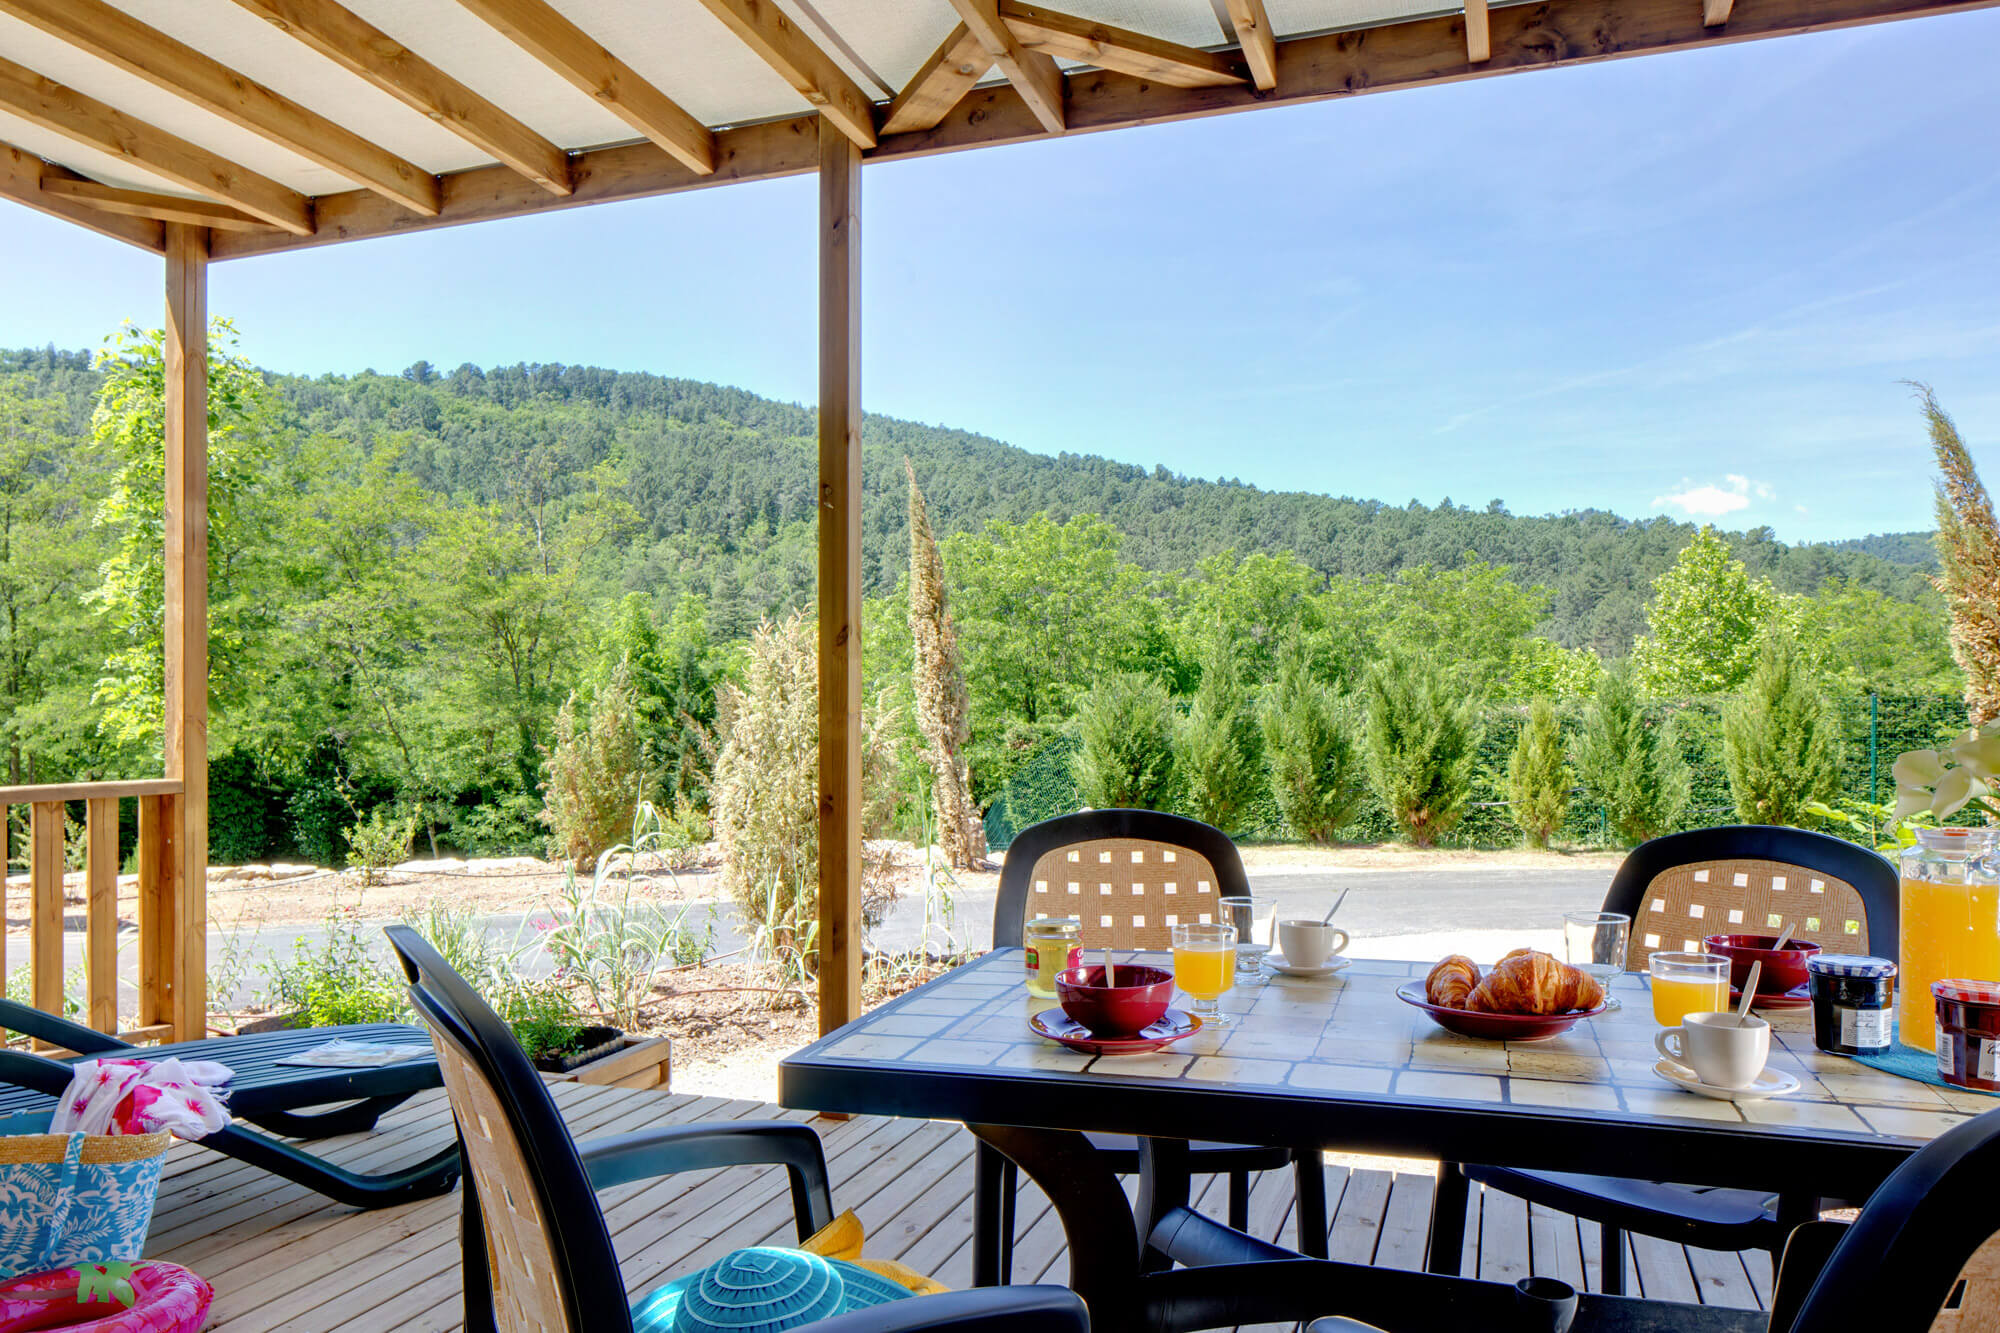 Camping 5 etoiles ardeche camping resort spa entre for Camping avec piscine ardeche